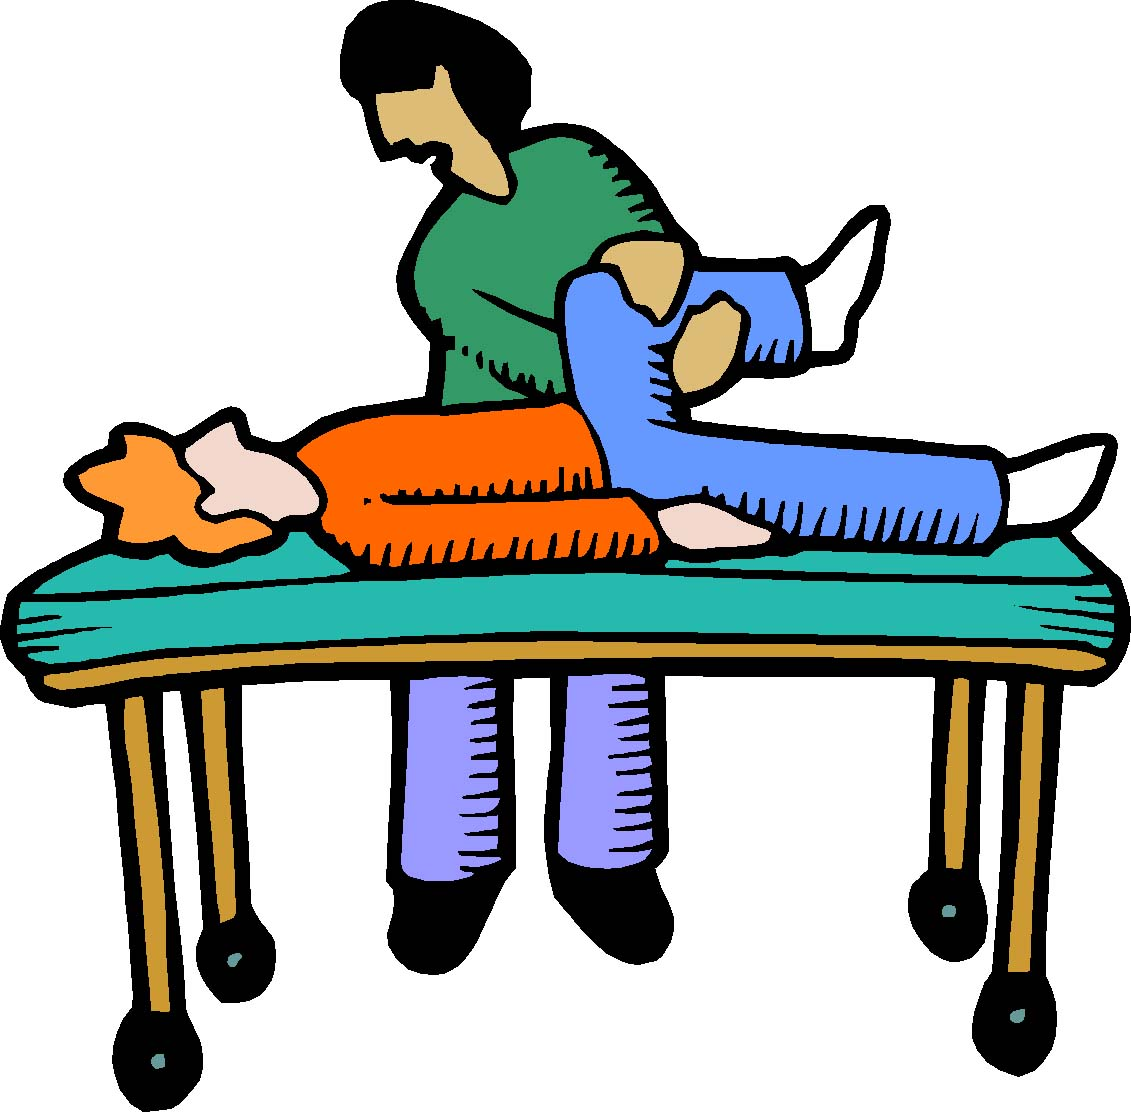 Icon Physical Therapy Png image #10943